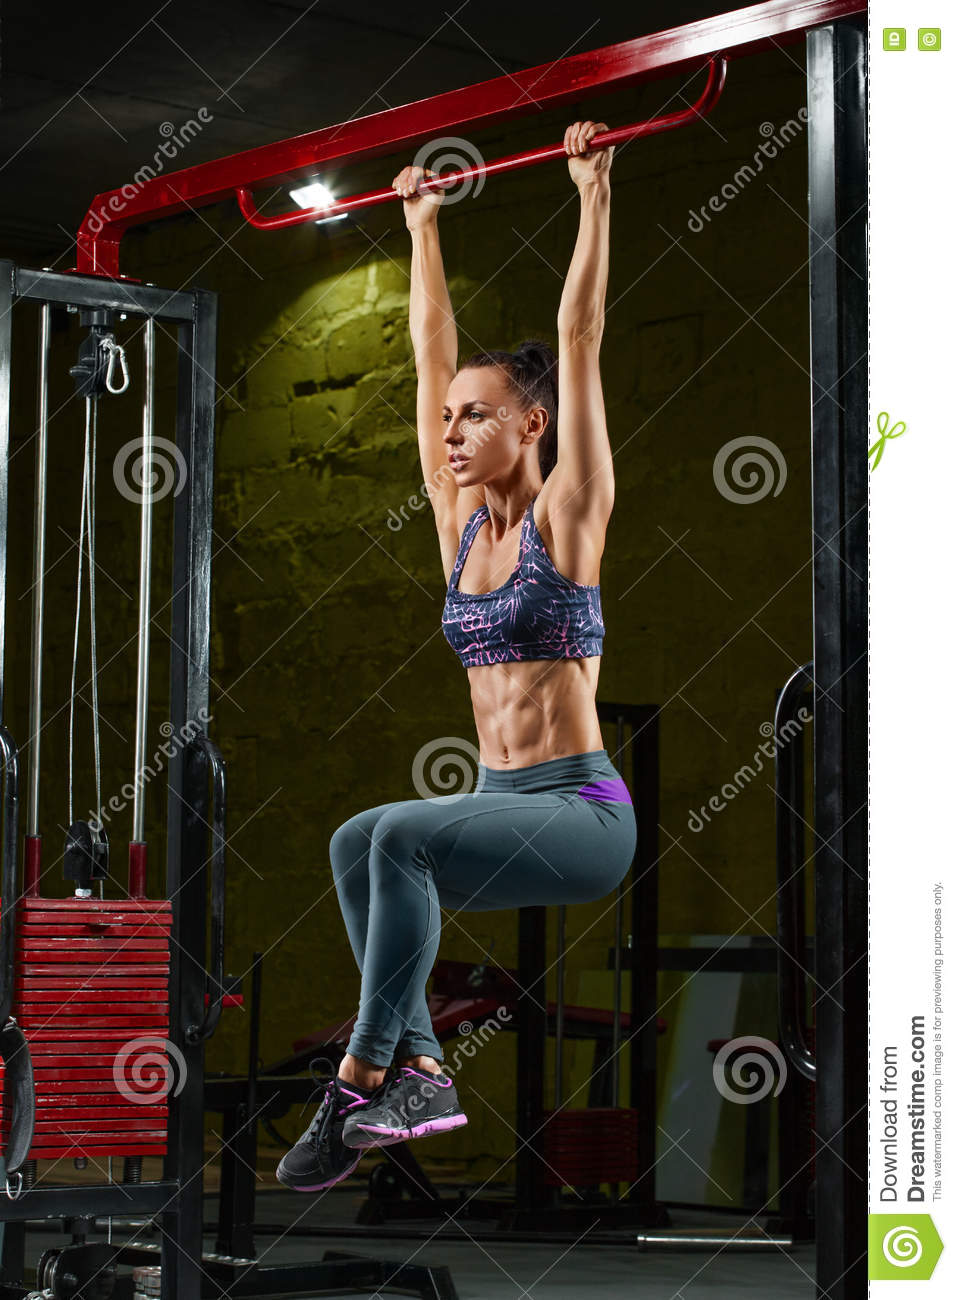 fitness girl doing pulls up on horizontal bar in gym. Muscular woman, abs, shaped abdominal